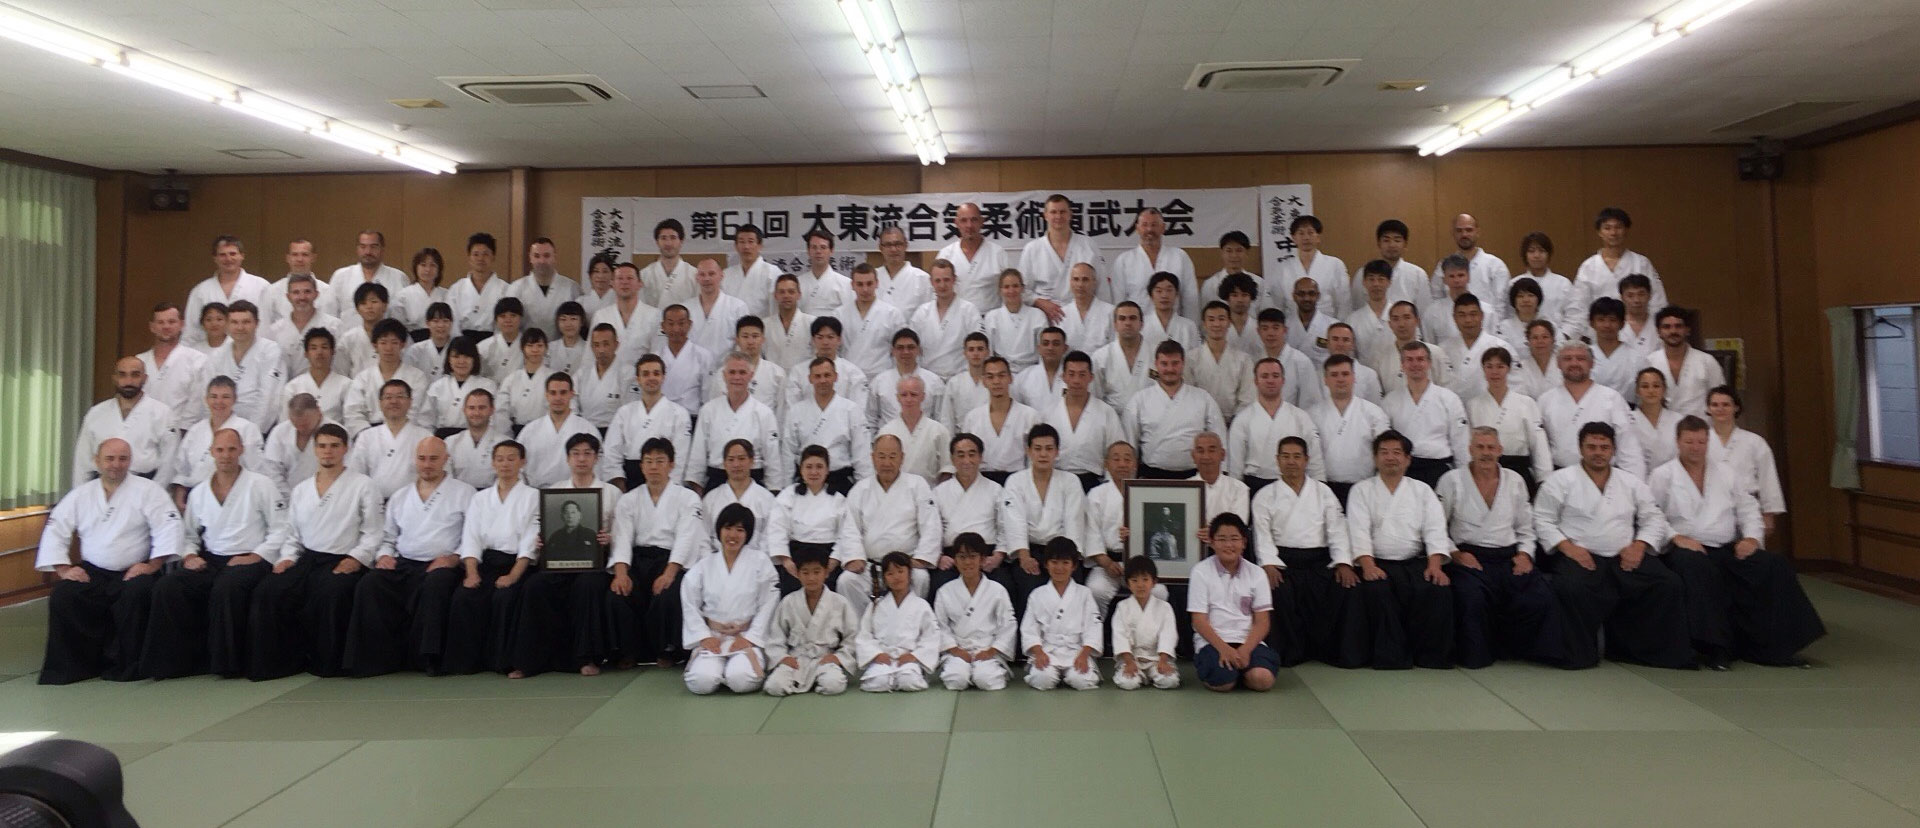 Group photo of 61st Daito-ryu Aikijujutsu Demonstration participants organized by Shimbukan Dojo